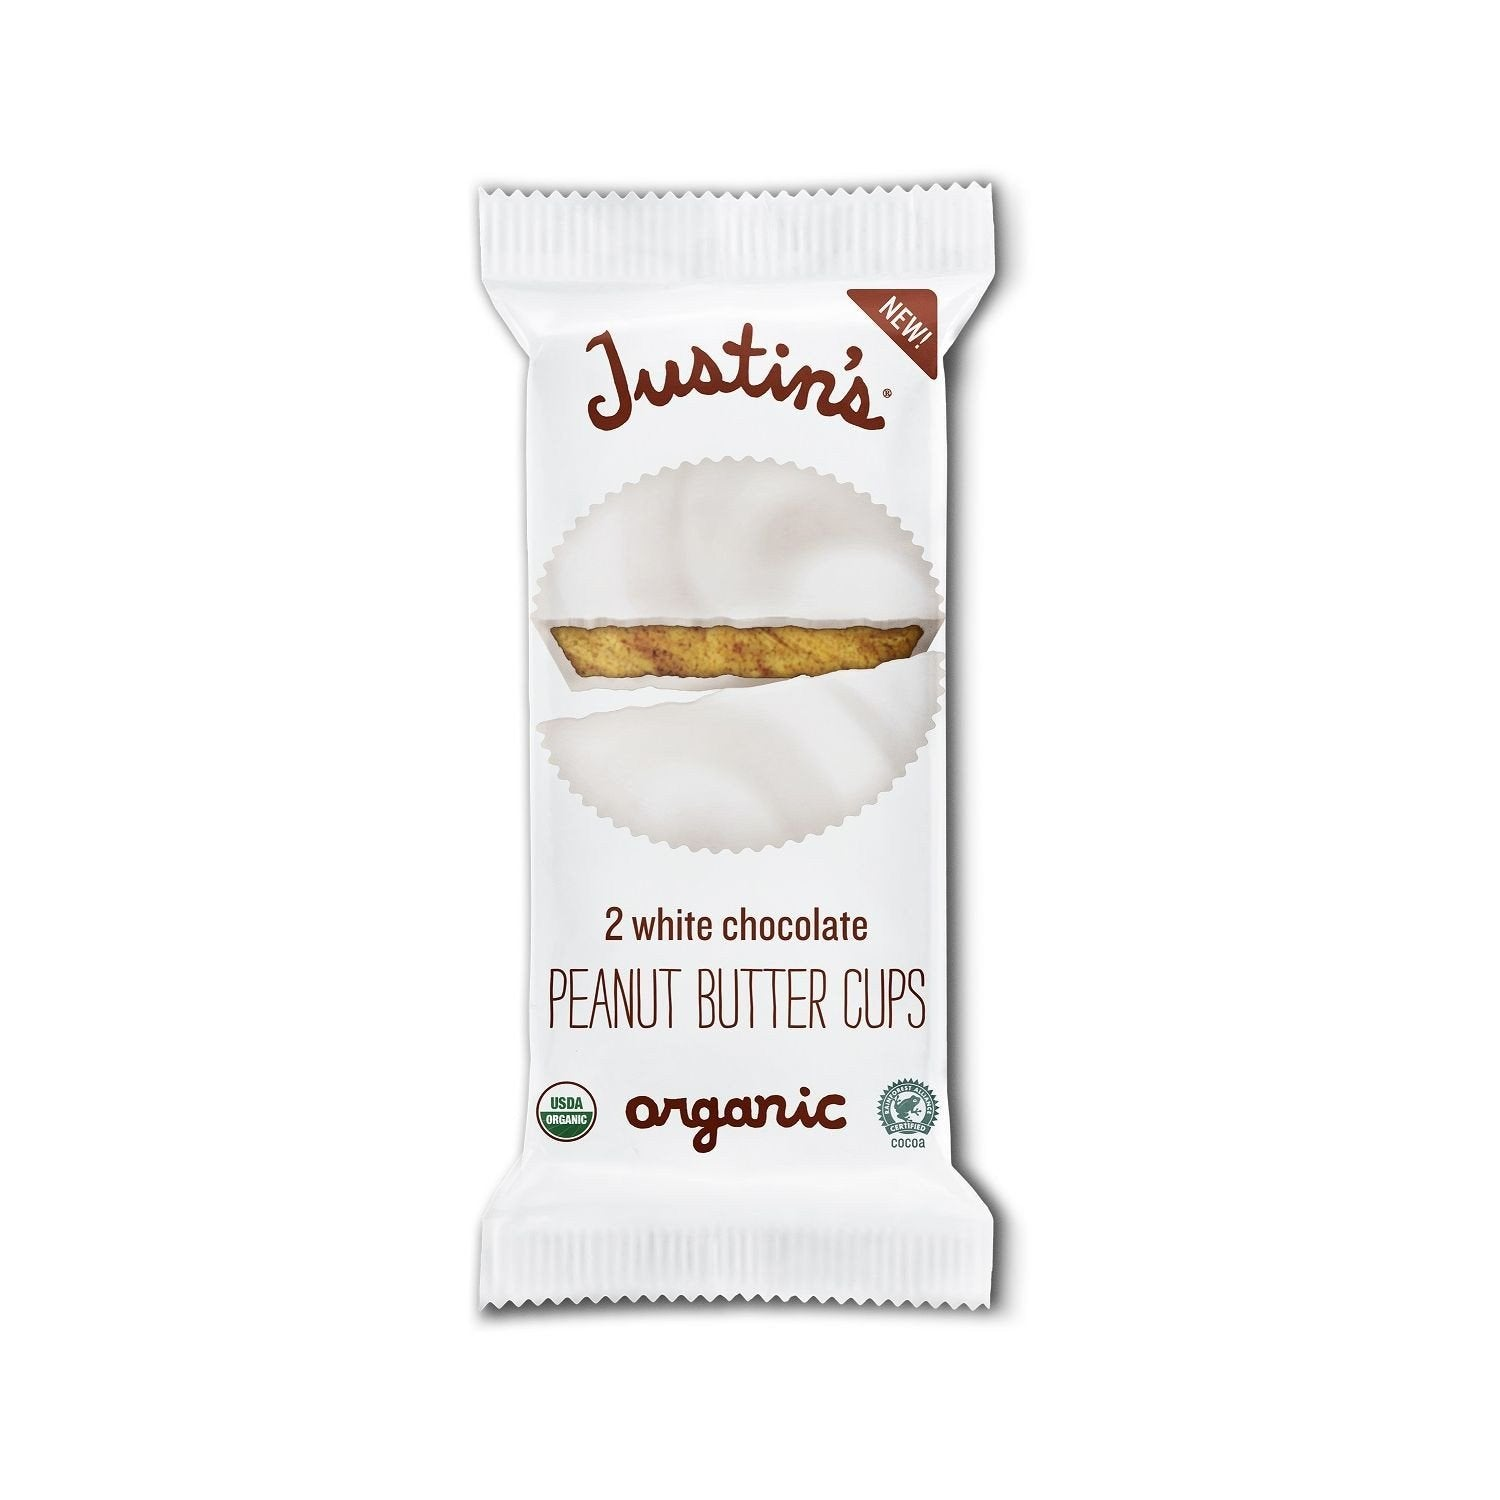 Justin's White Chocolate Organic Peanut Butter Cups, 1.4 Oz (Pack of 12)